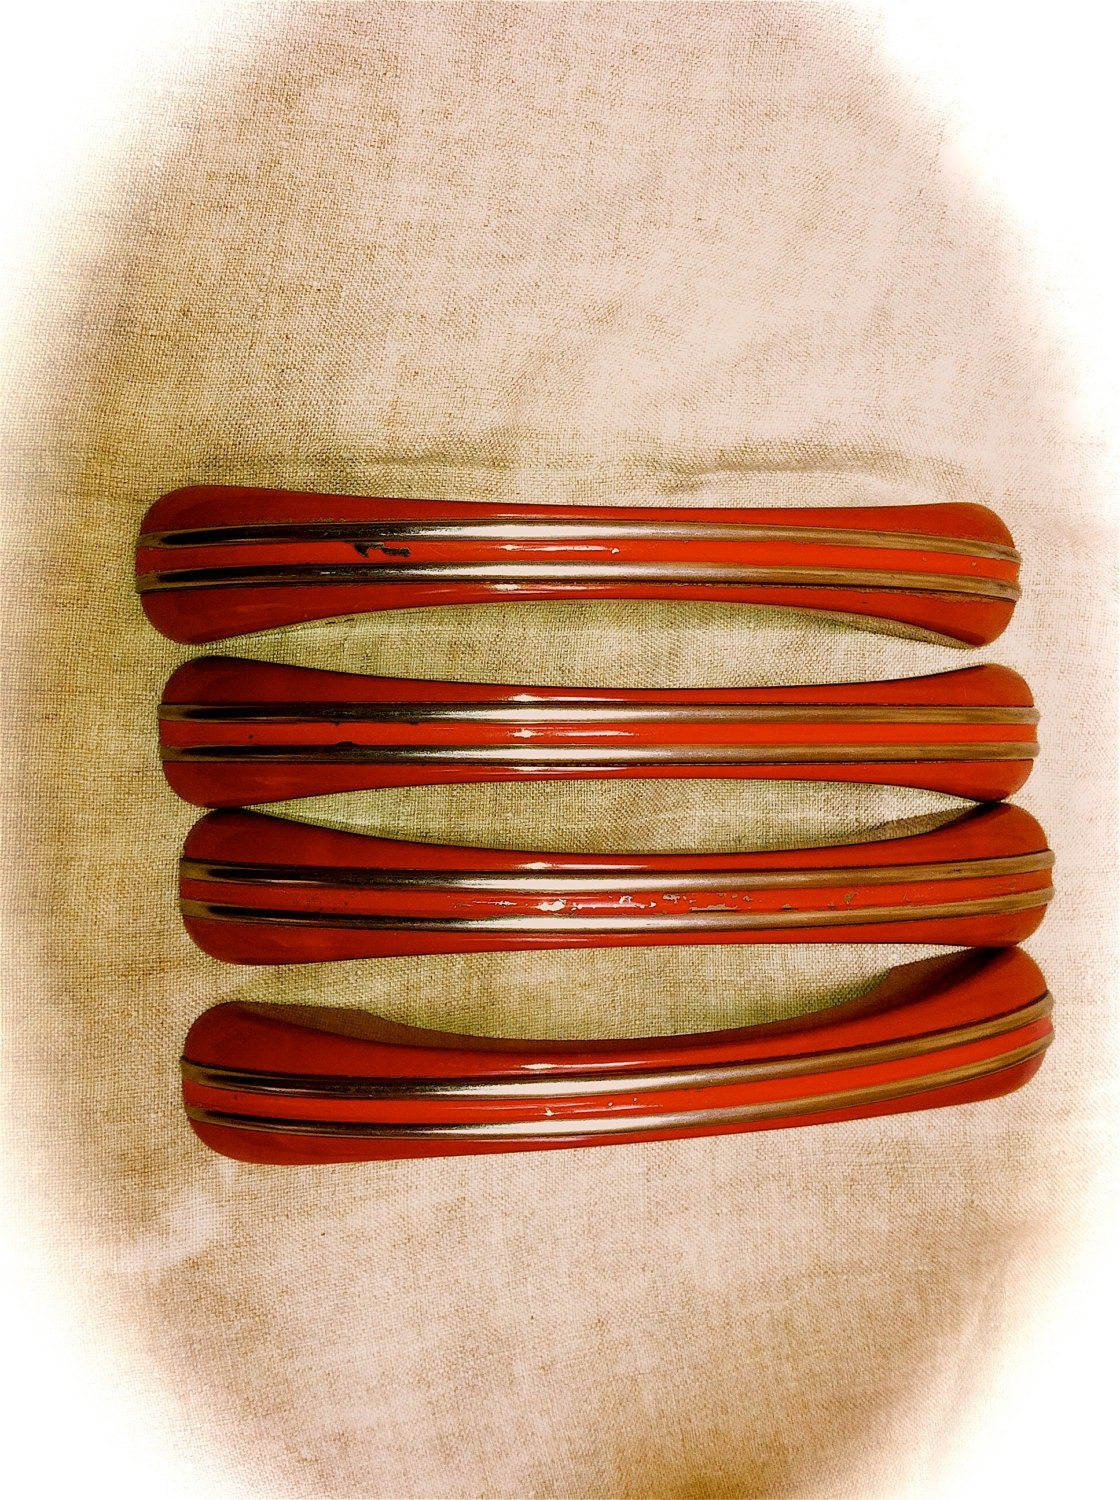 2 Very Large Red Bakelite Vintage Appliance Door Drawer Pulls